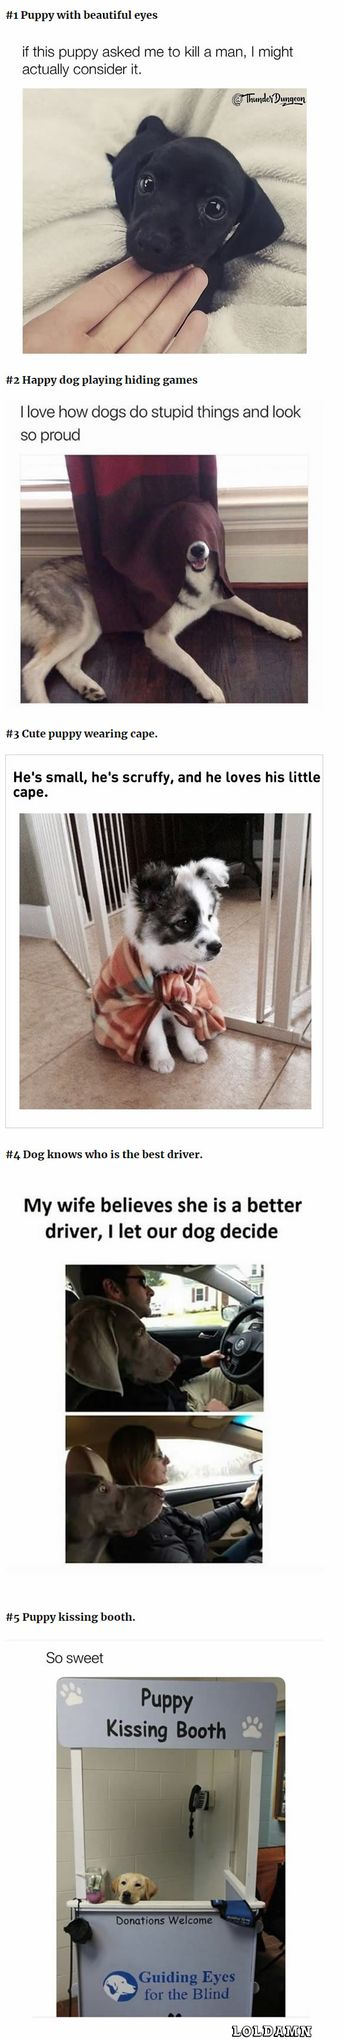 10 Dog Memes Today!#4 Dog knows who is the best driver.